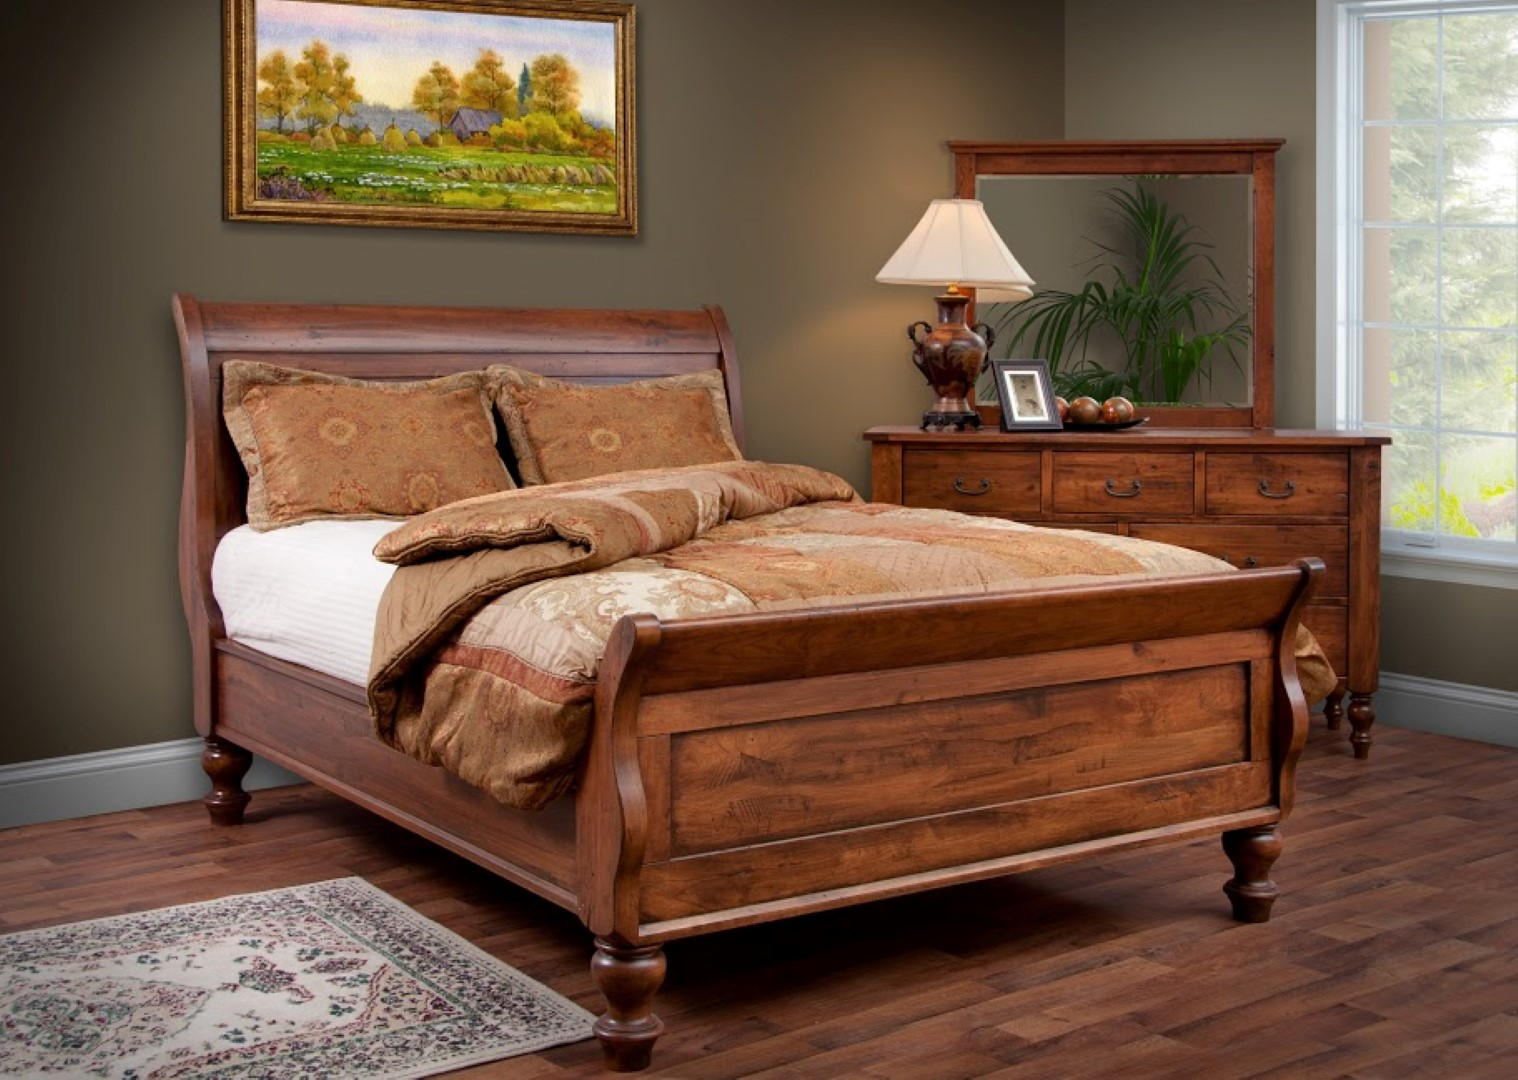 amish made kitchen cabinets pantry canyon creek bedroom suite - town & country furniture